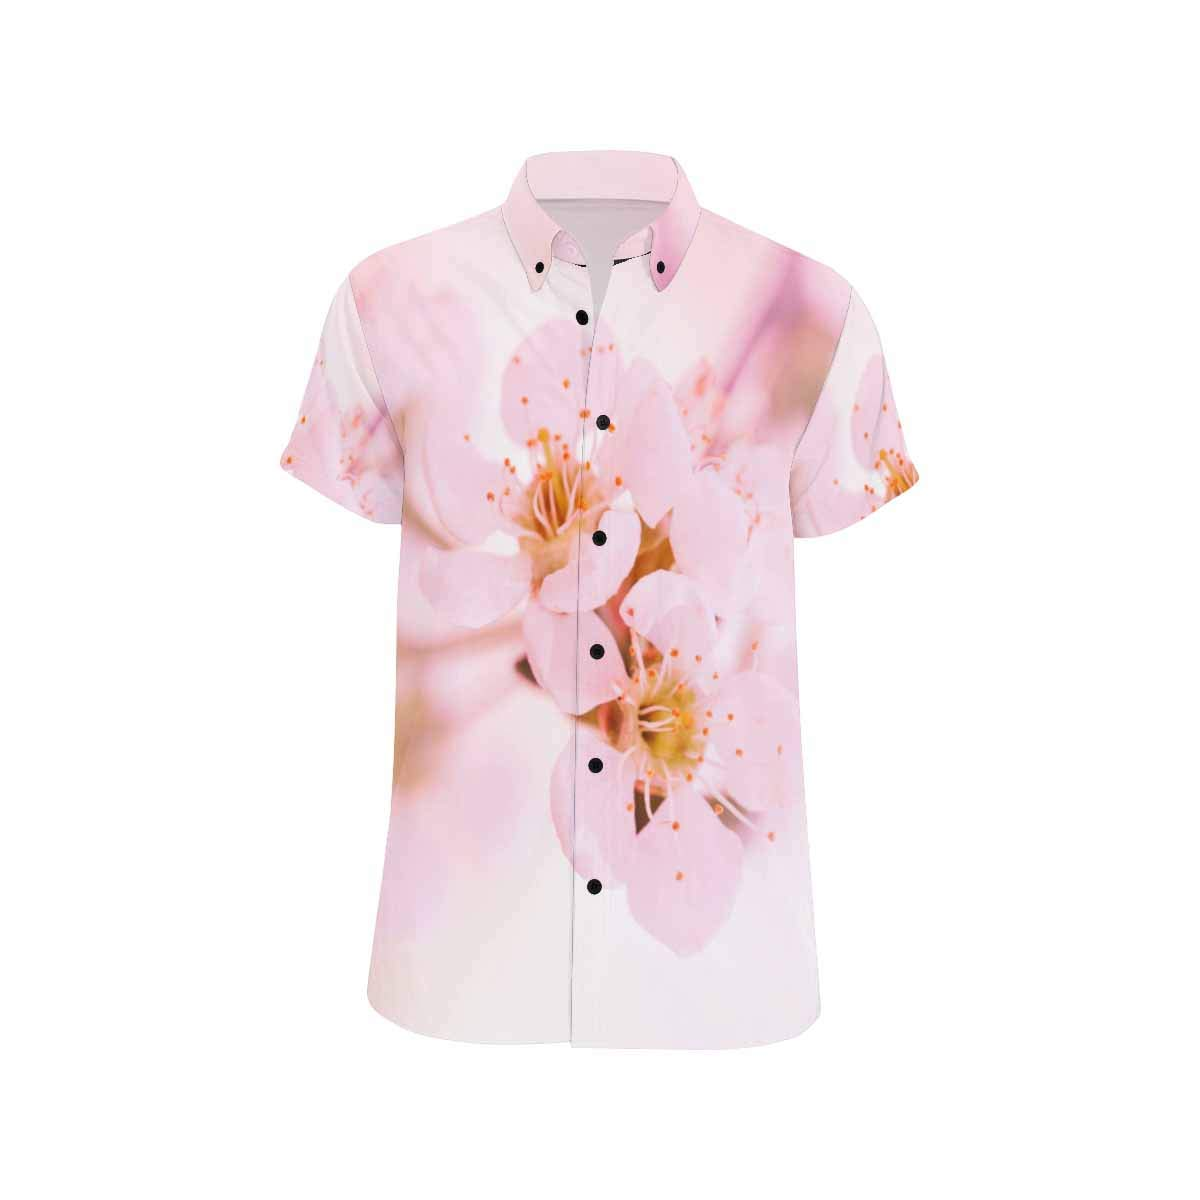 InterestPrint Spring Apple Blossoms Flowers Button Down Casual Shortsleeve Tee for Men